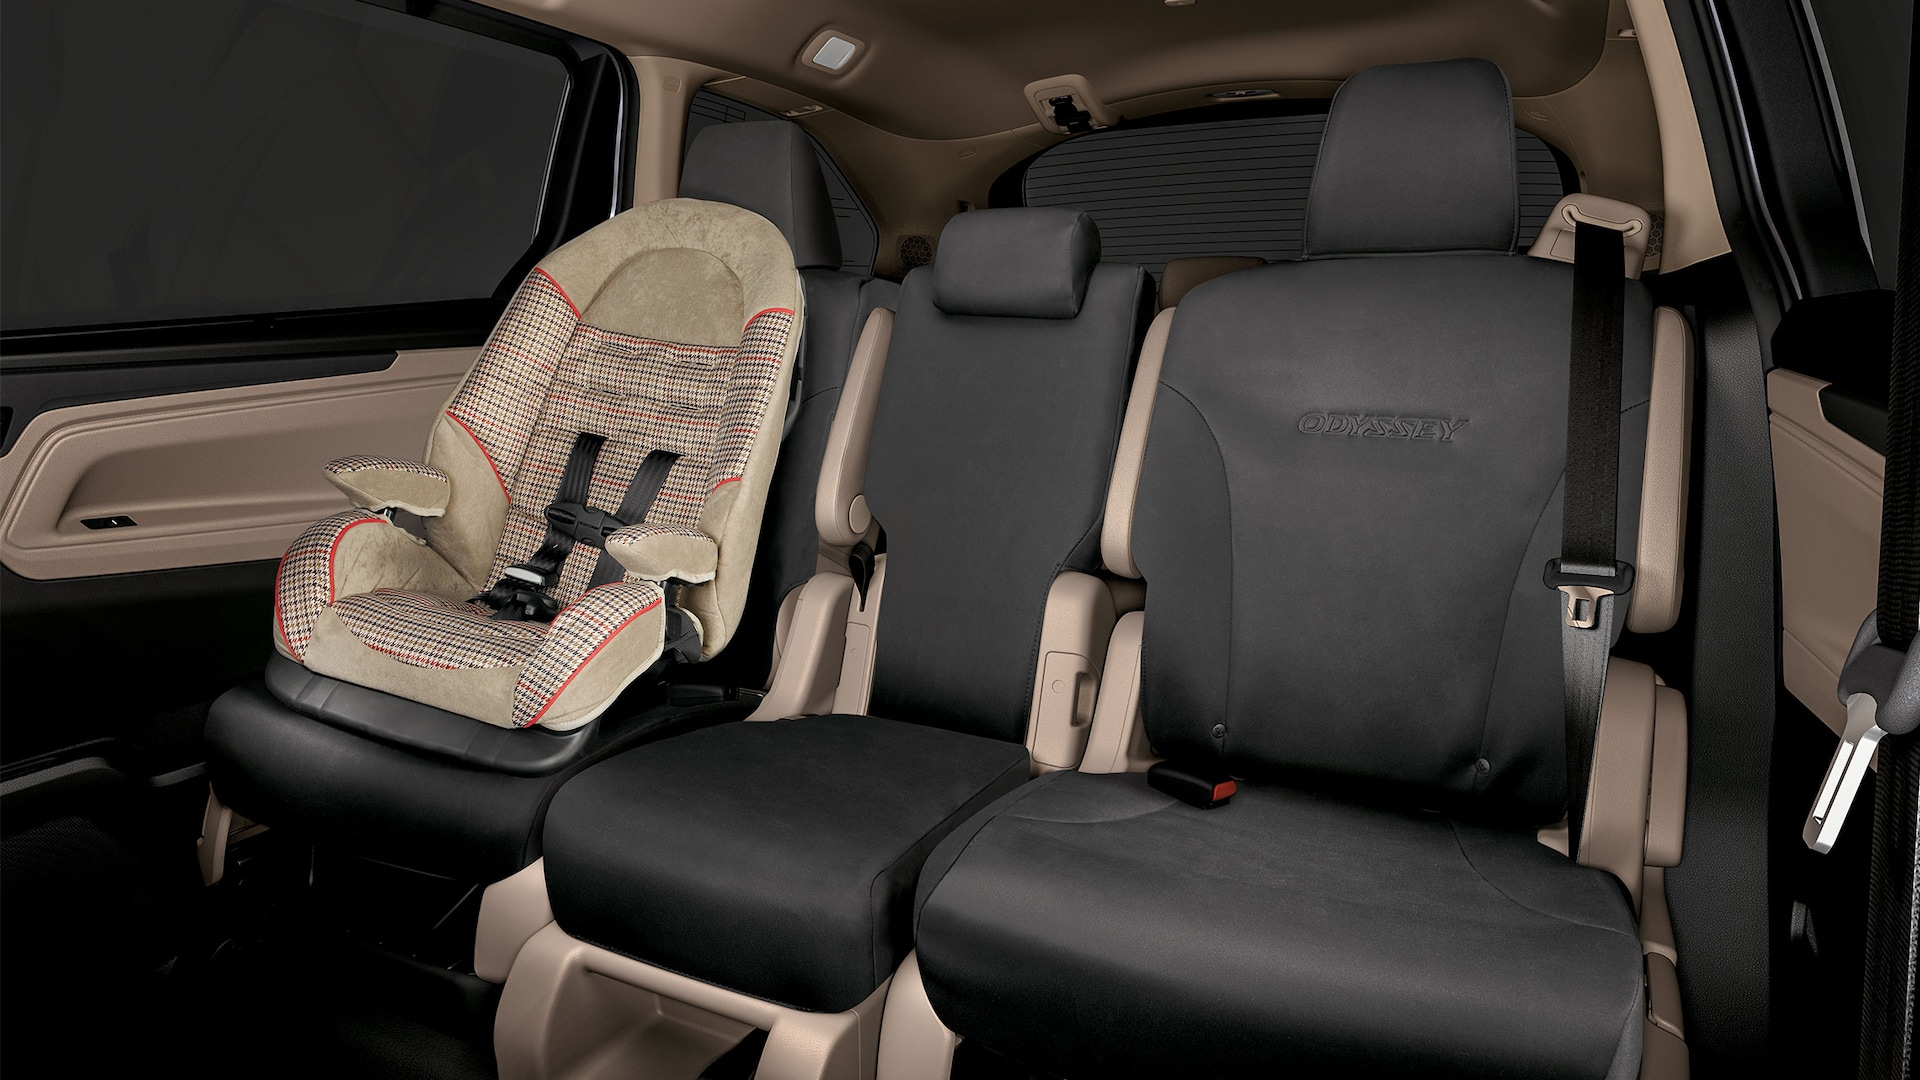 Detail of 2020 Honda Odyssey accessory 2nd- and 3rd-row seat covers.